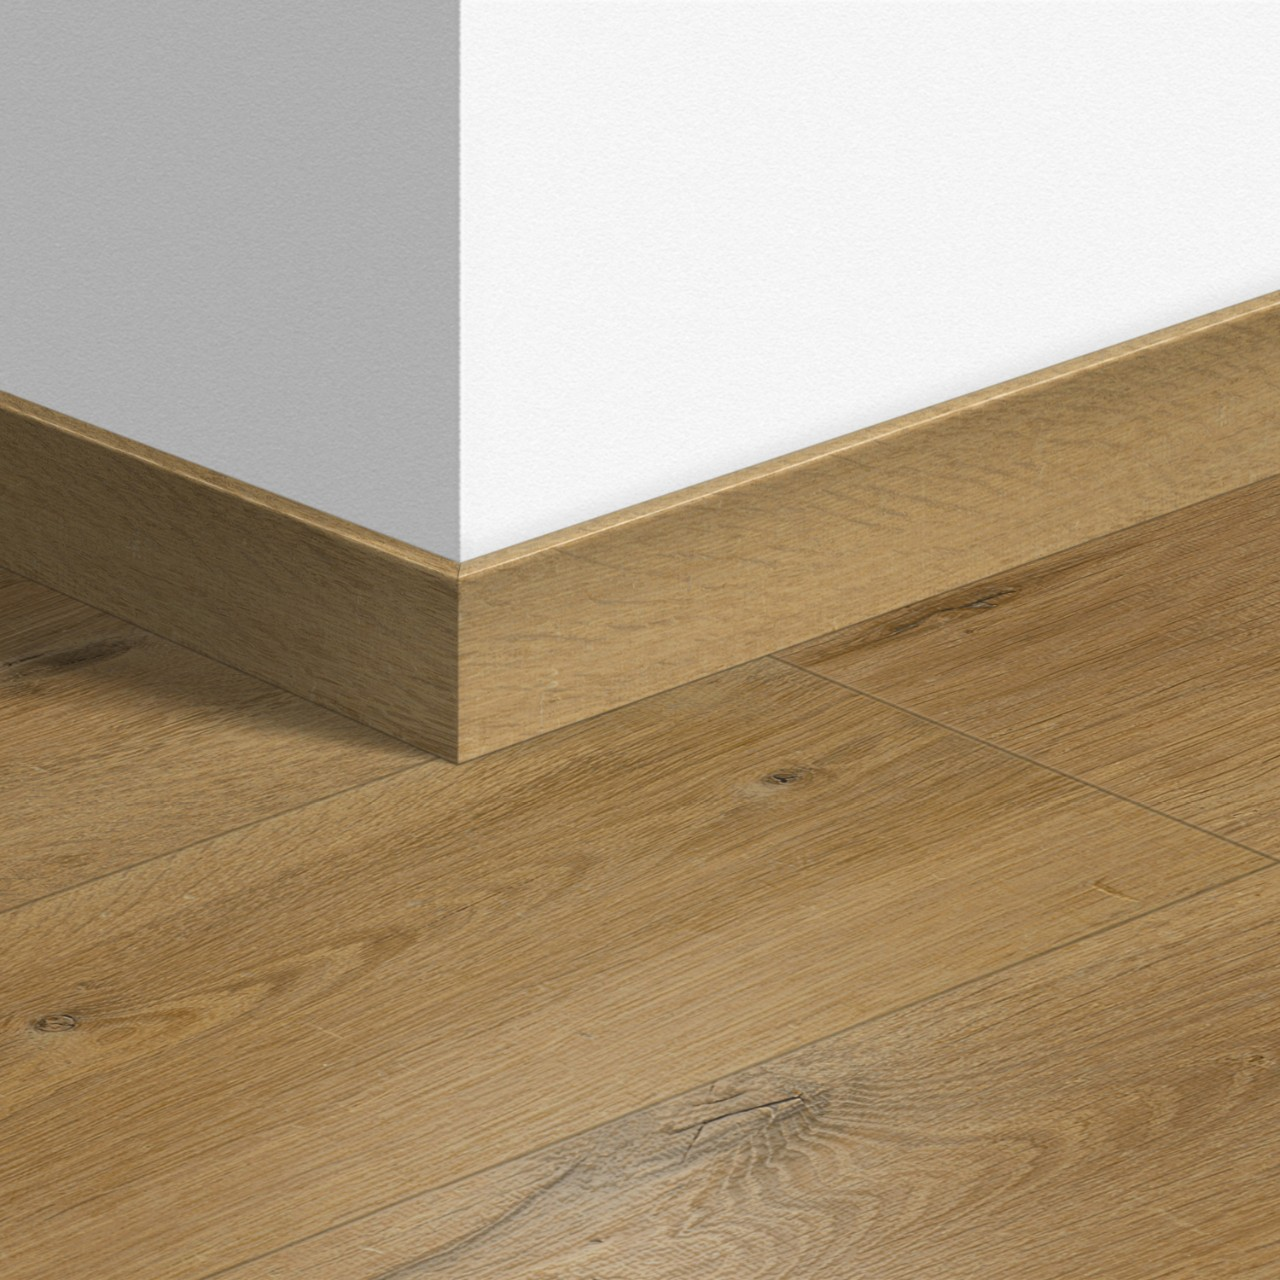 QSSK Laminate Accessories Soft oak natural QSSK01855